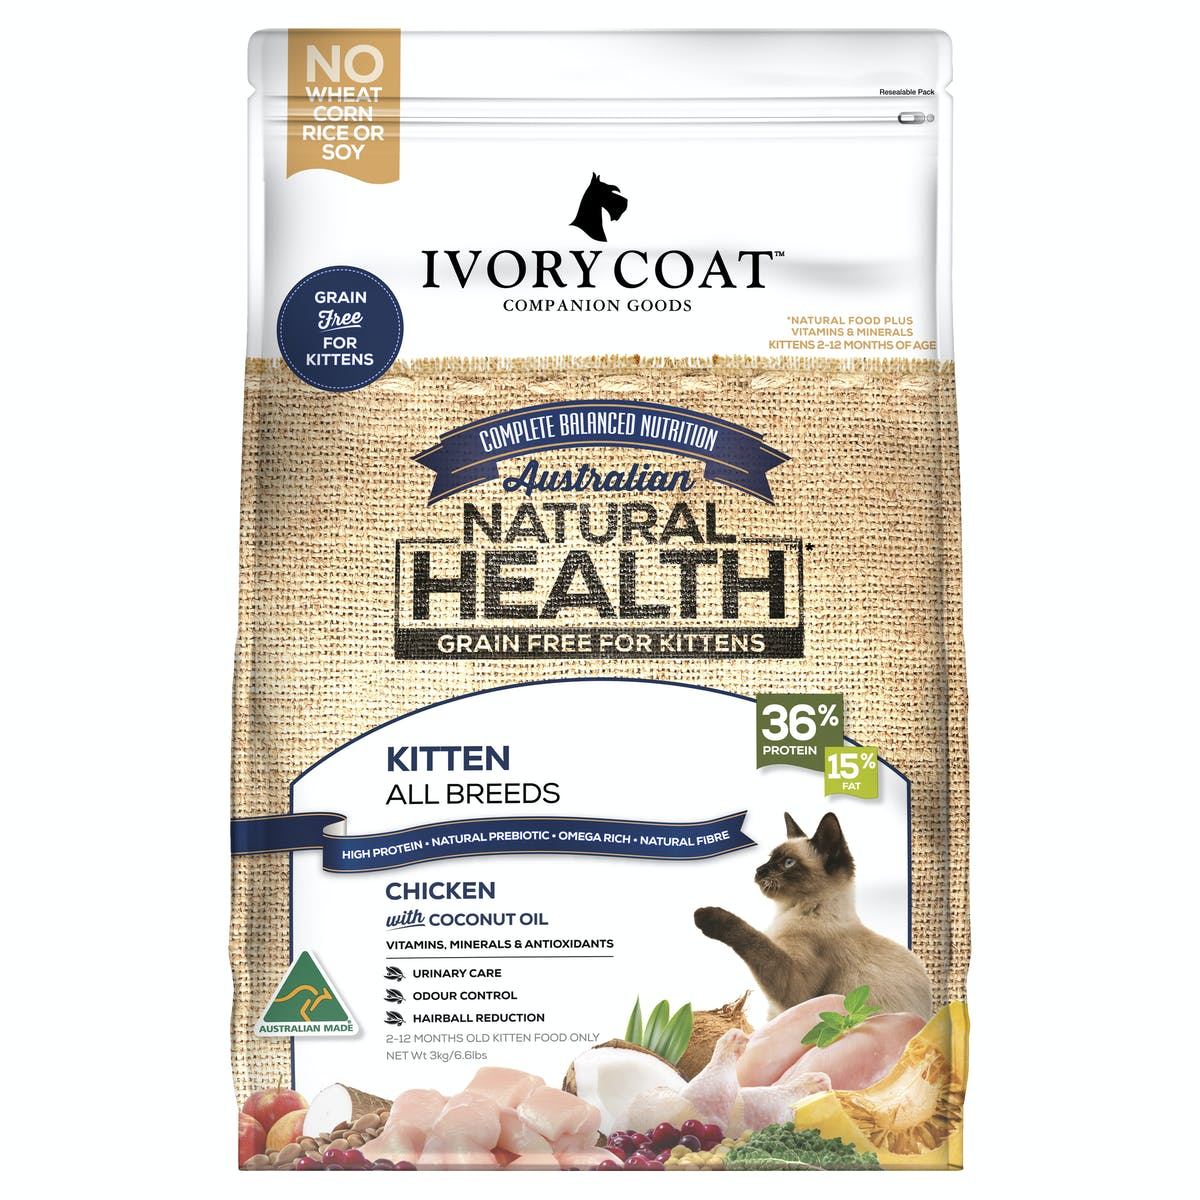 Ivory Coat | Chicken with Coconut Oil | Grain-free dry cat food | Front of pack